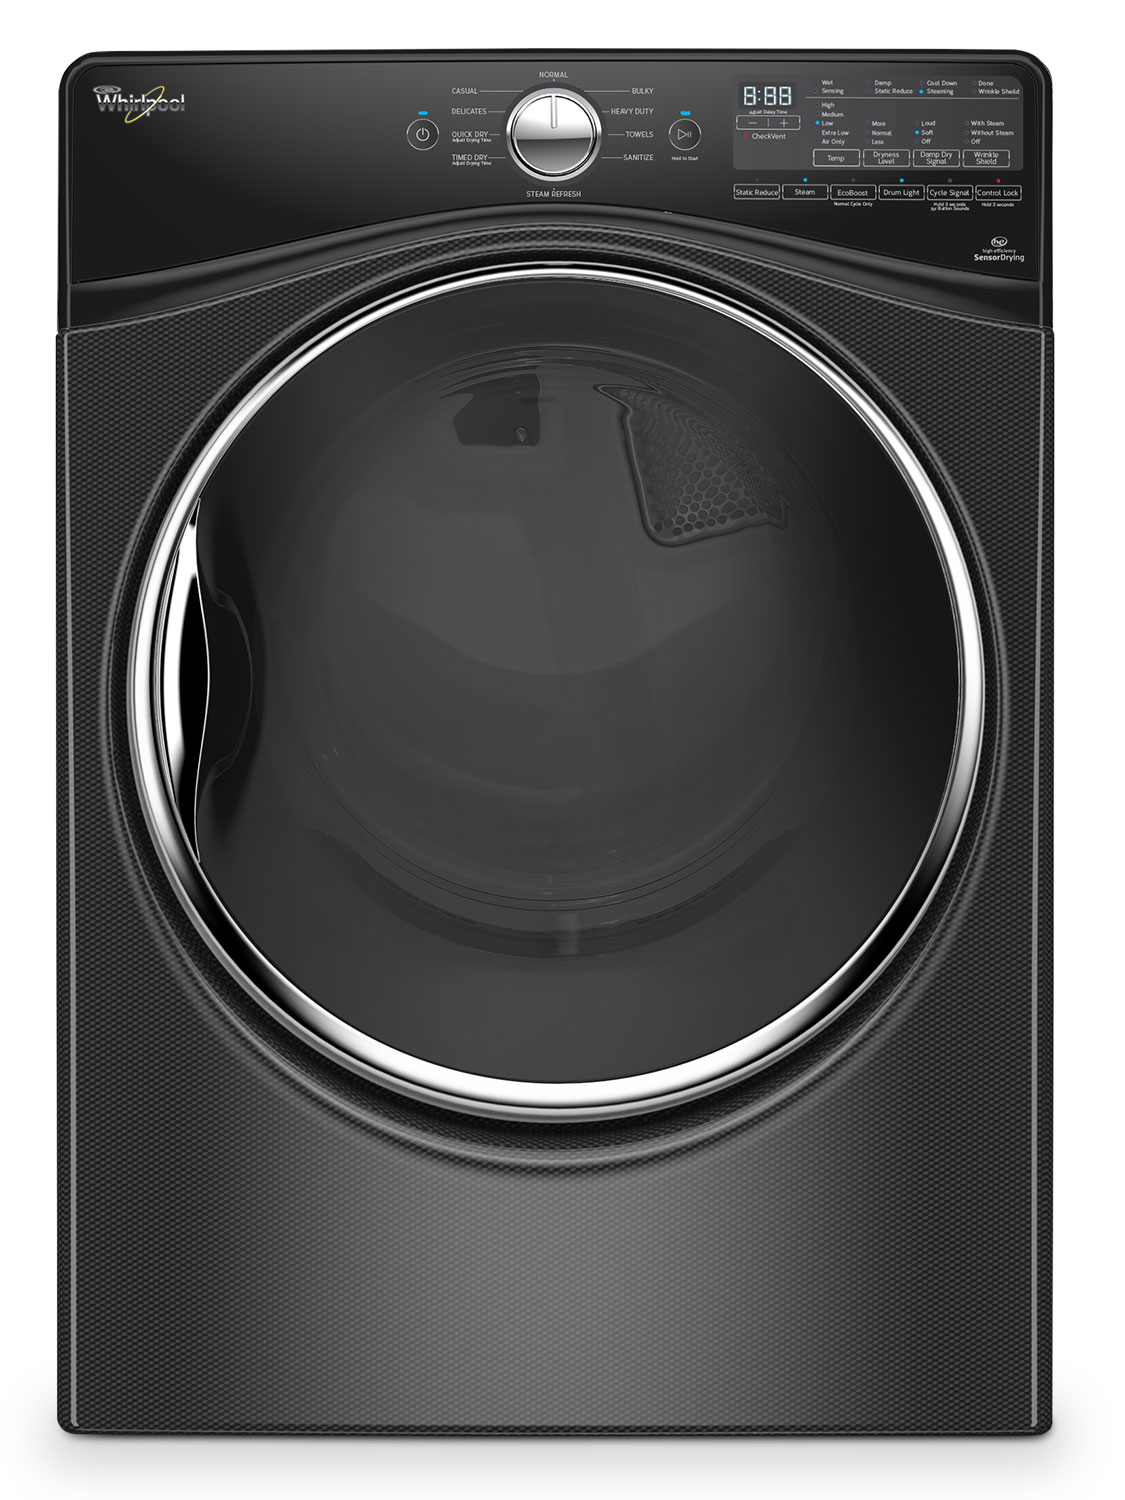 Whirpool Black Diamond Electric Dryer (8.5 Cu. Ft.) - YWED92HEFBD